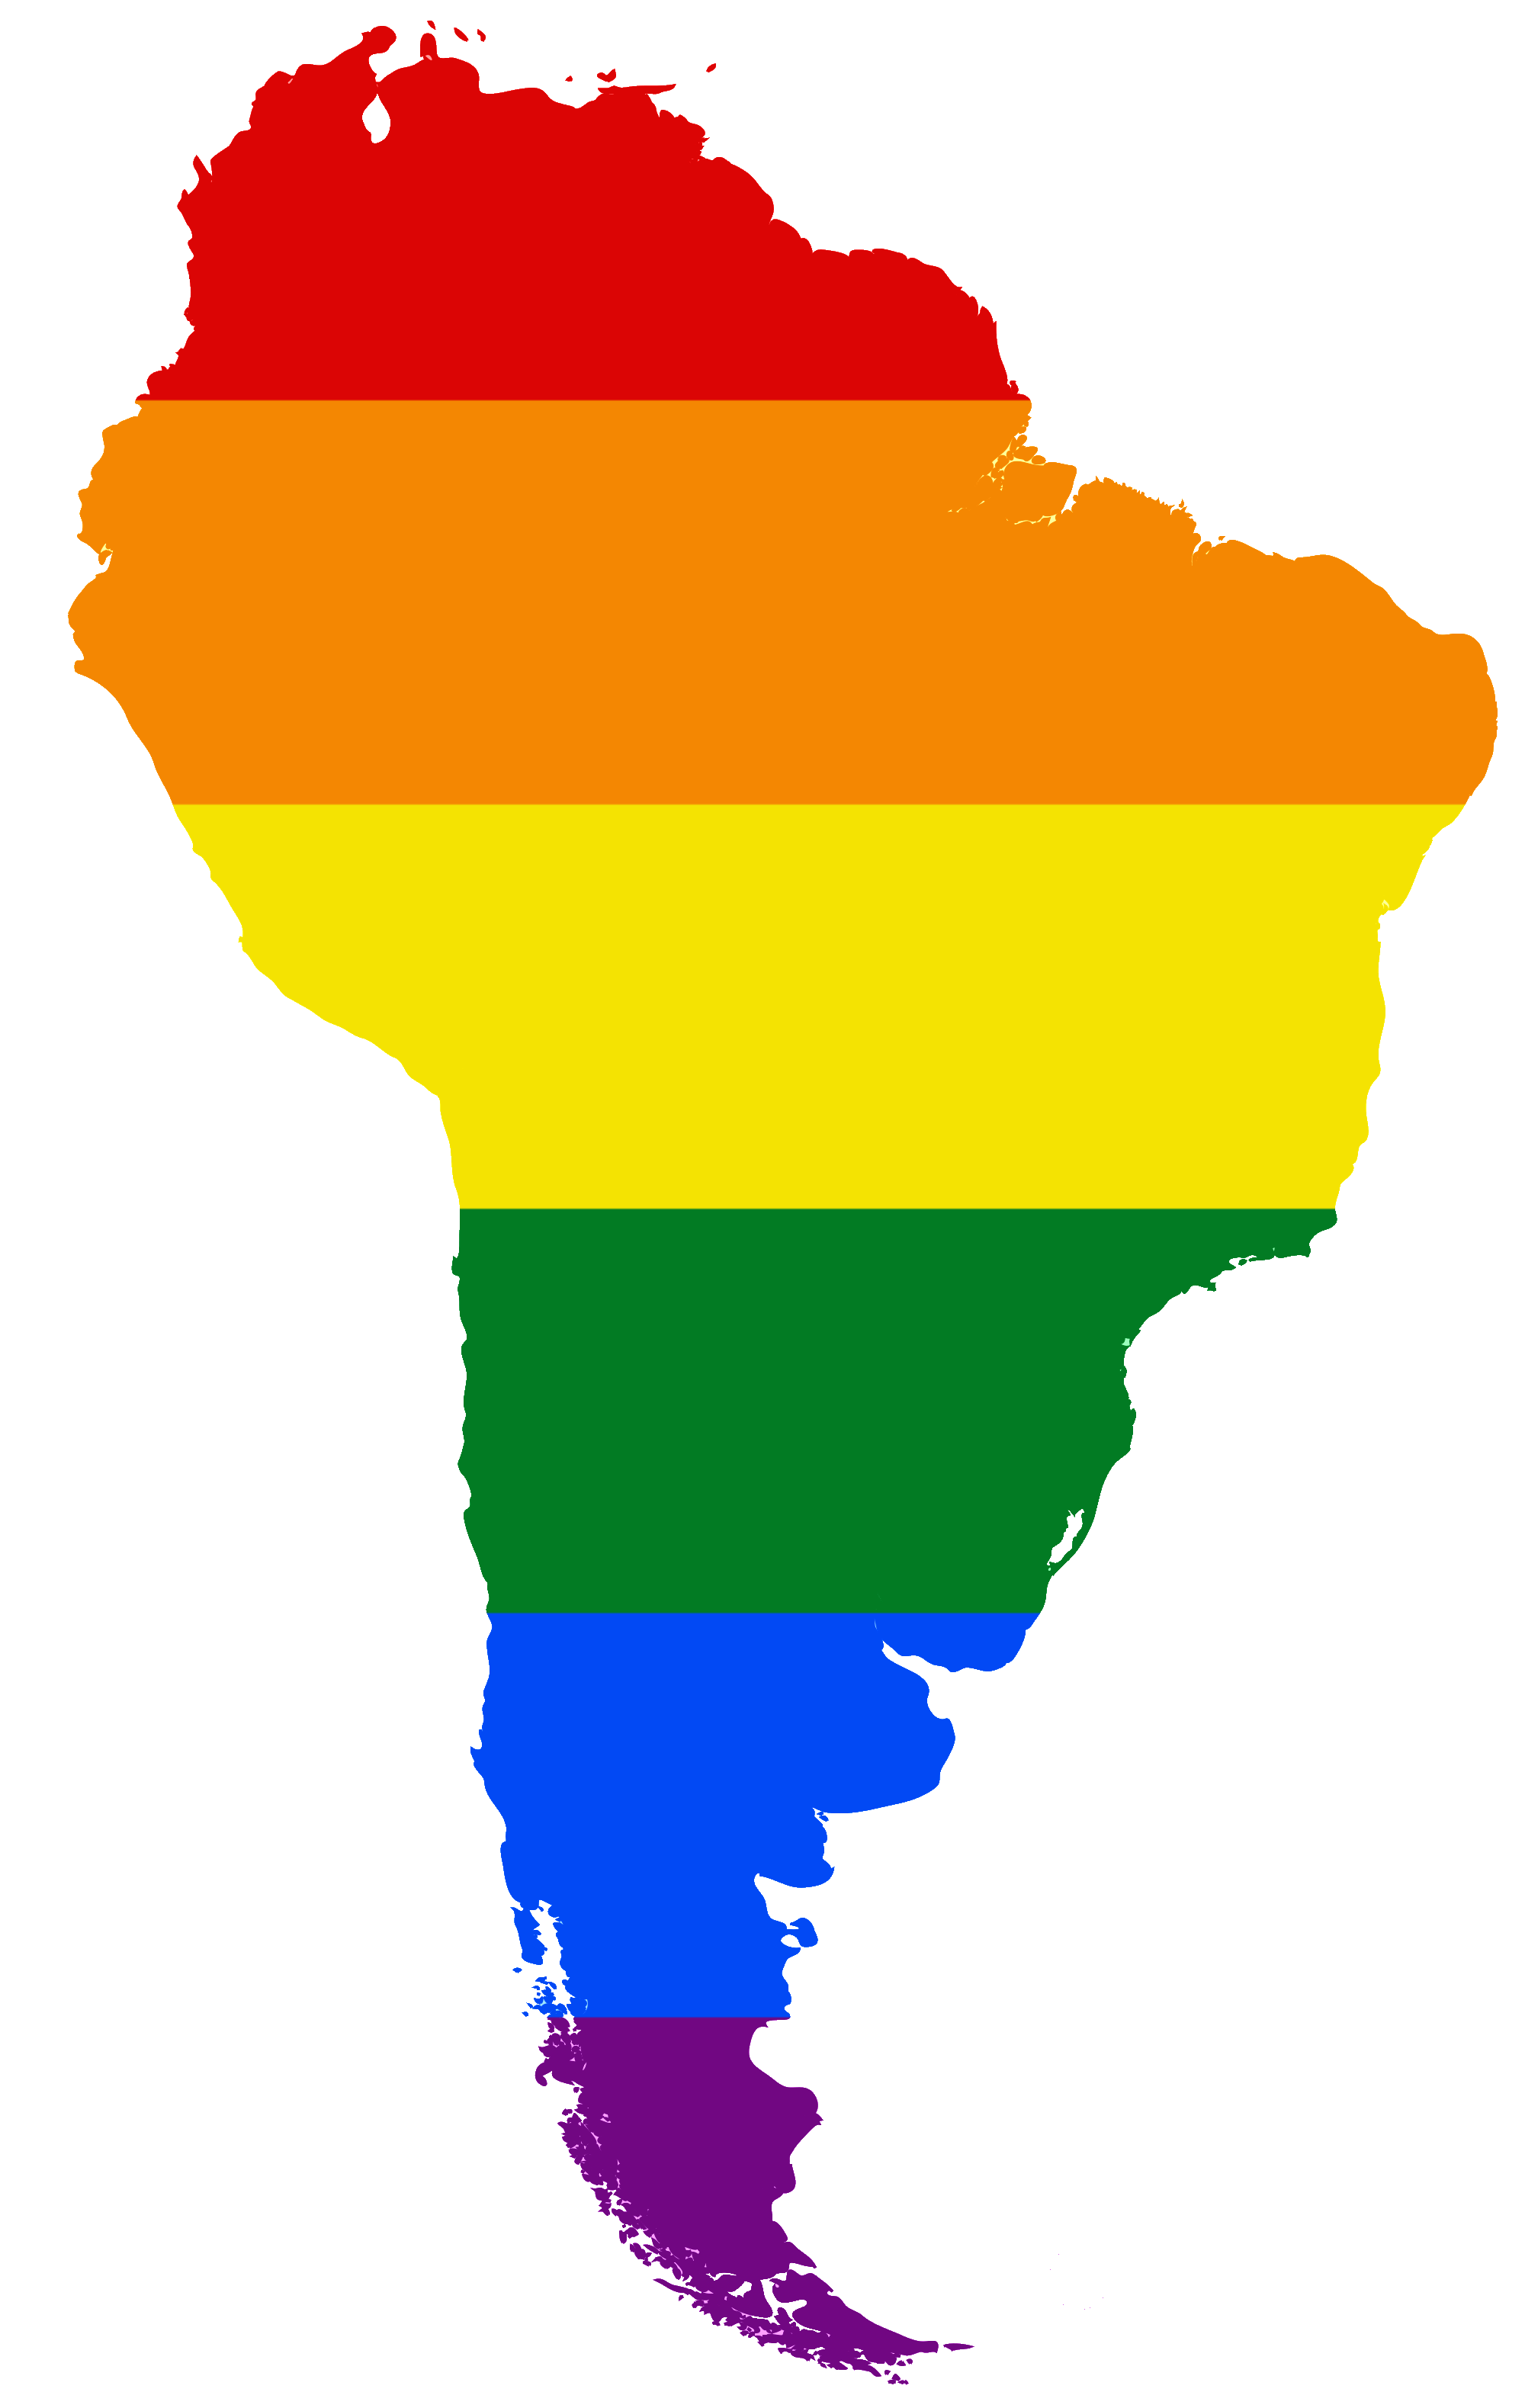 FileLGBT Flag Map Of South Americapng Wikimedia Commons - South america map and flags